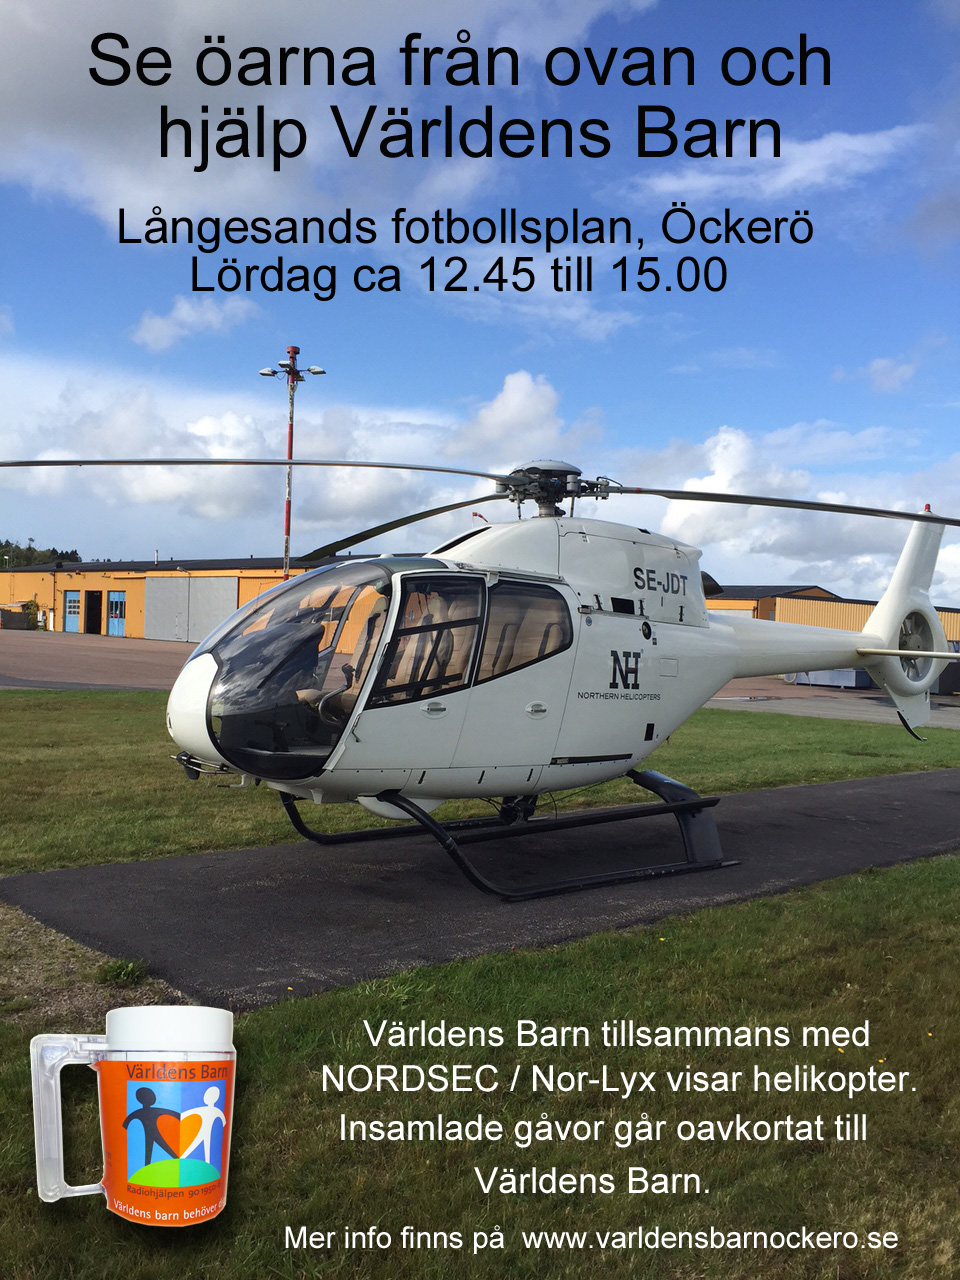 Helikopter m text